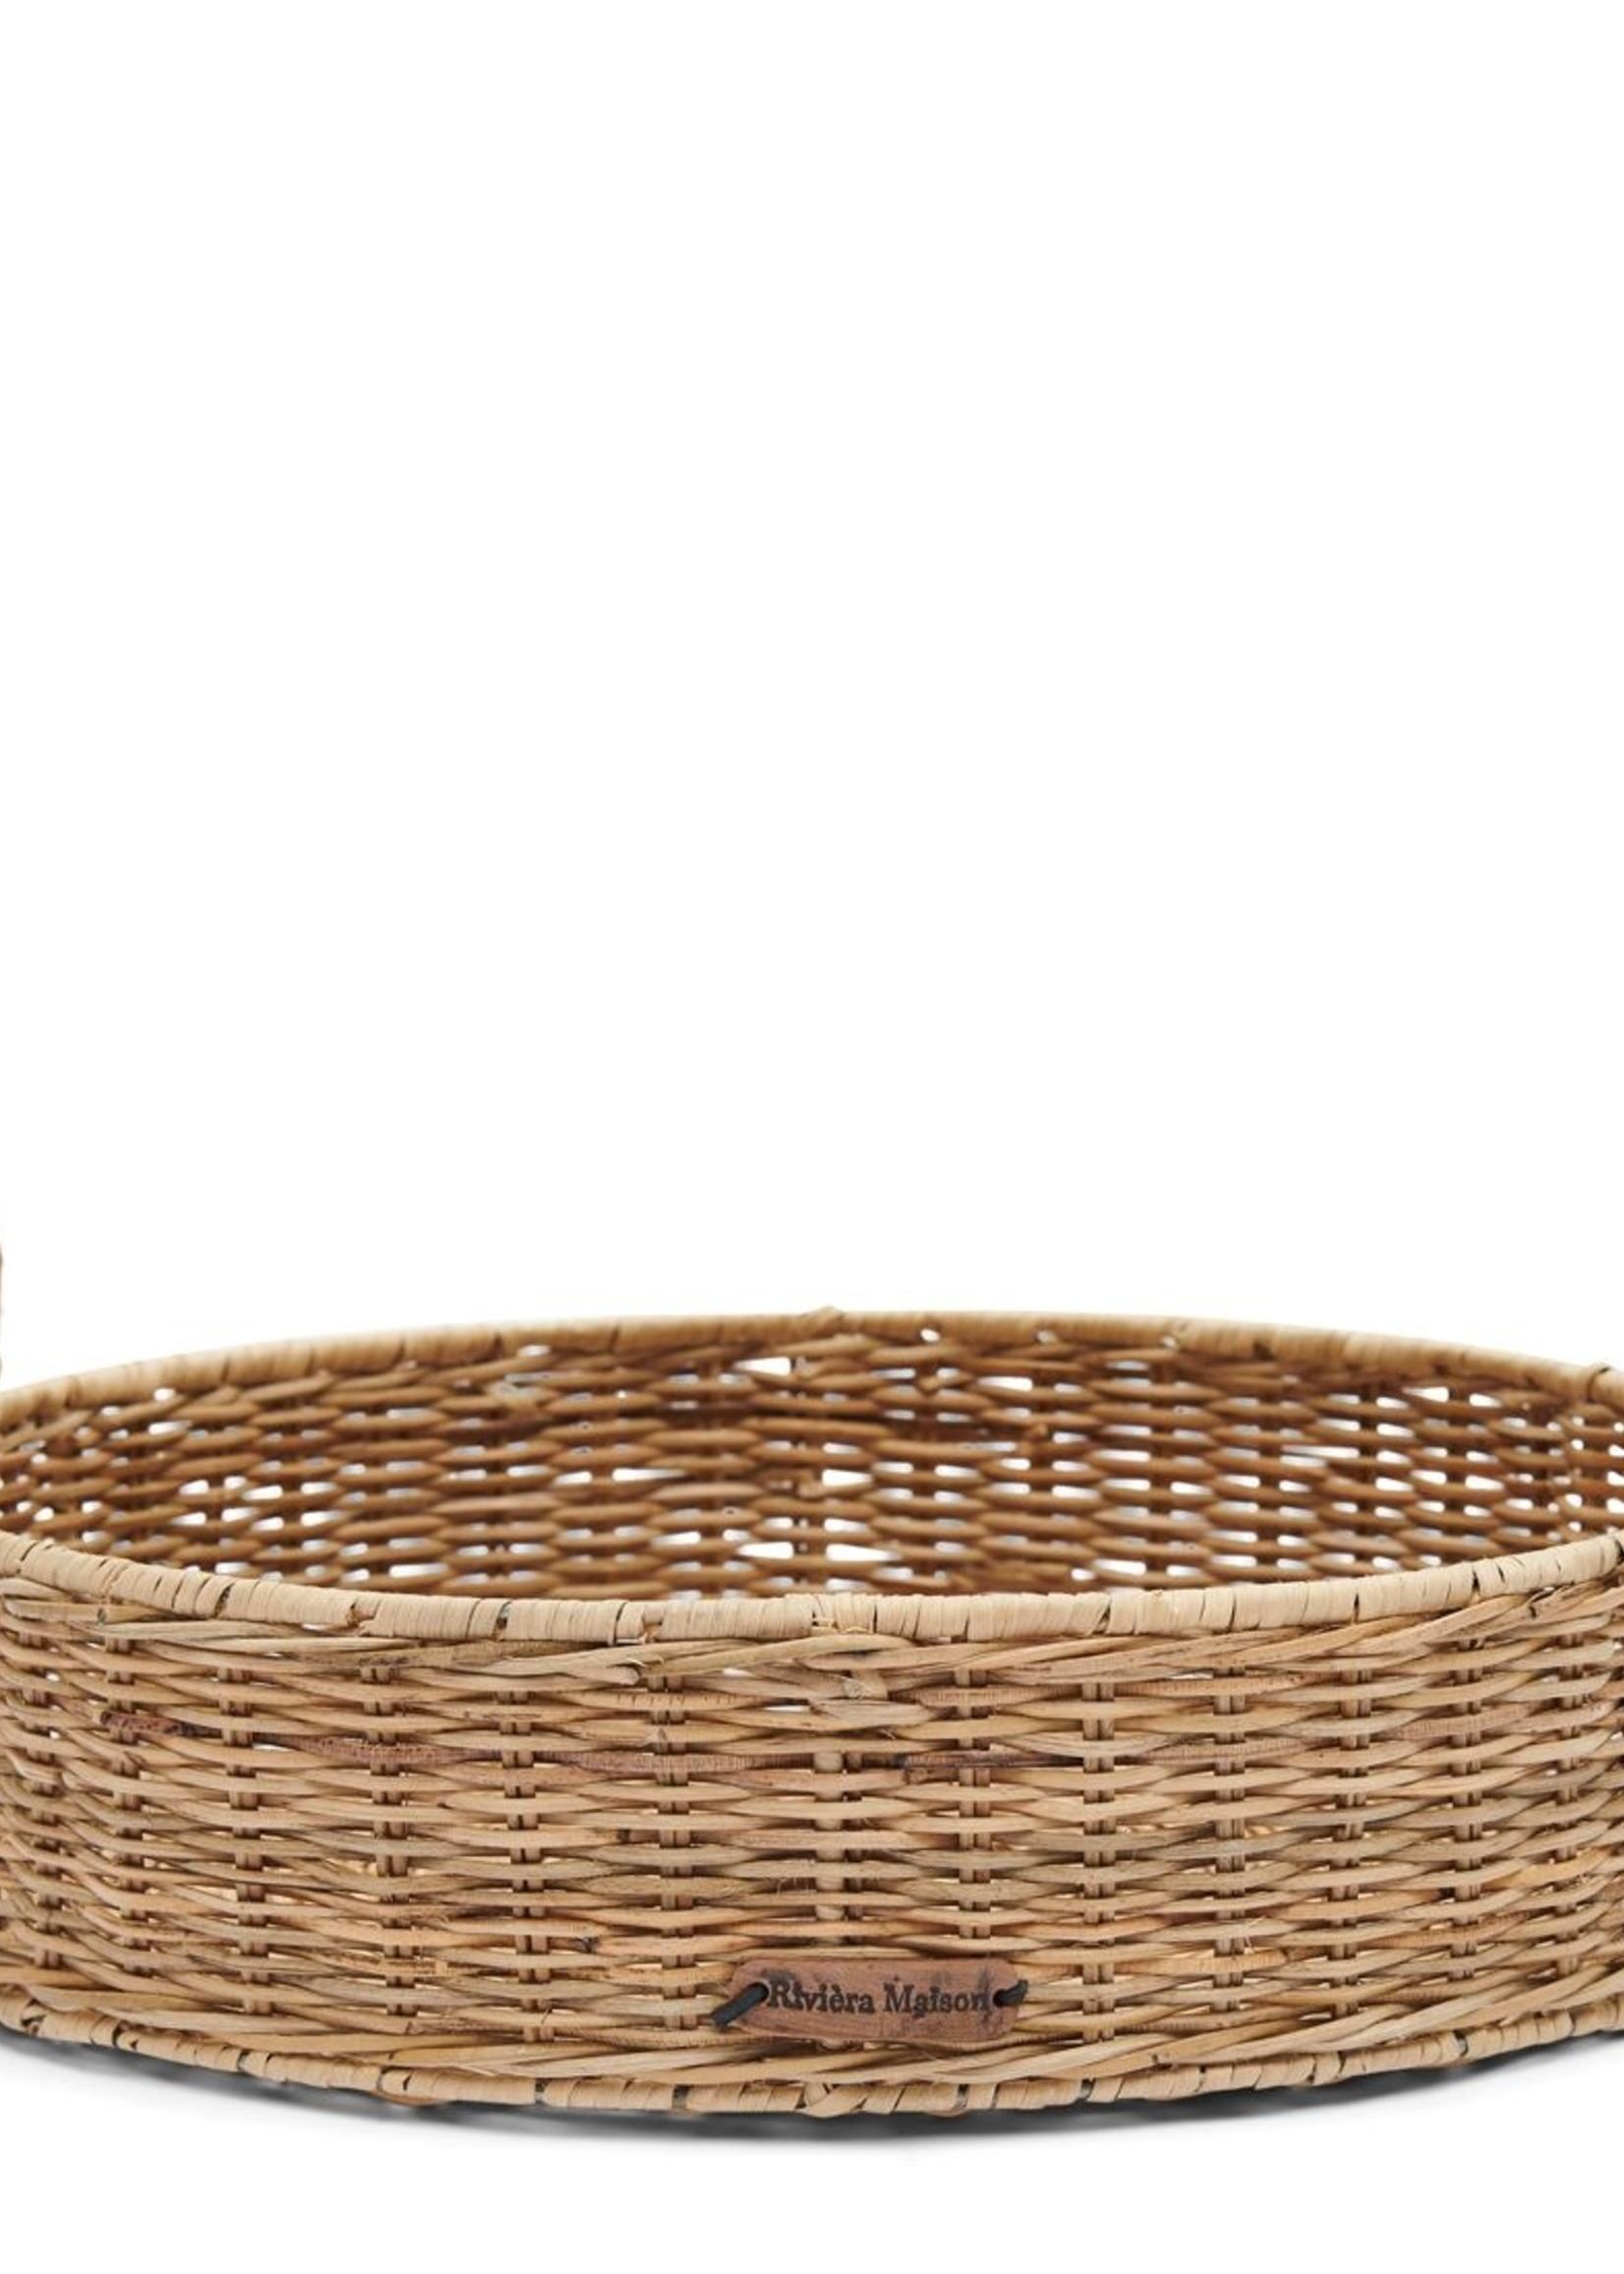 Riviera Maison Rustic Rattan RM 48 Round Tray